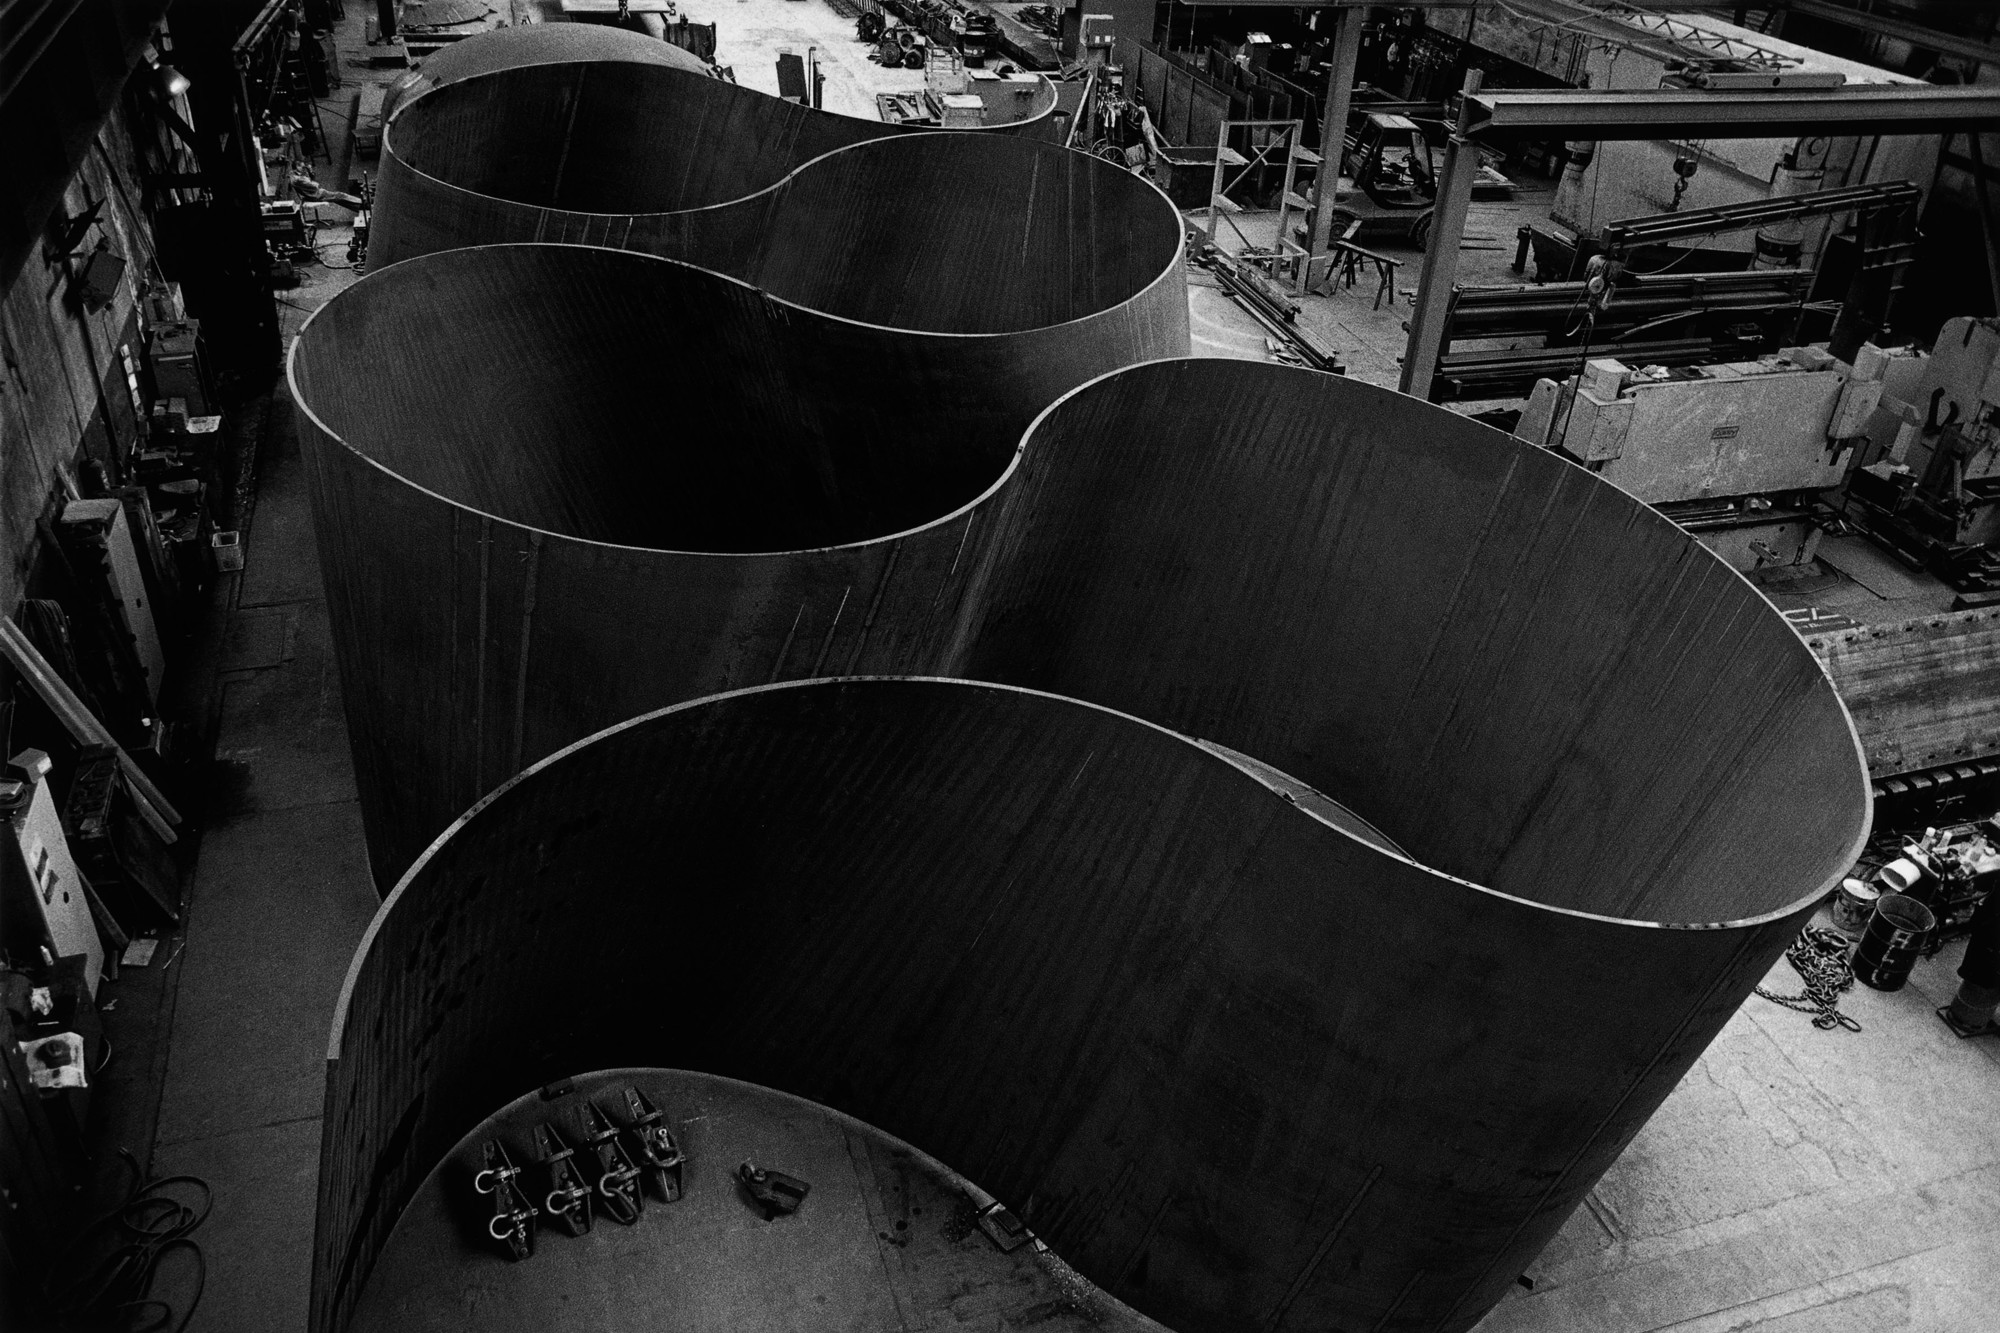 Richard Serra (American, born 1938). Band. 2006. Weatherproof steel. Los Angeles County Museum of Art.  Gift of Eli and Edythe Broad